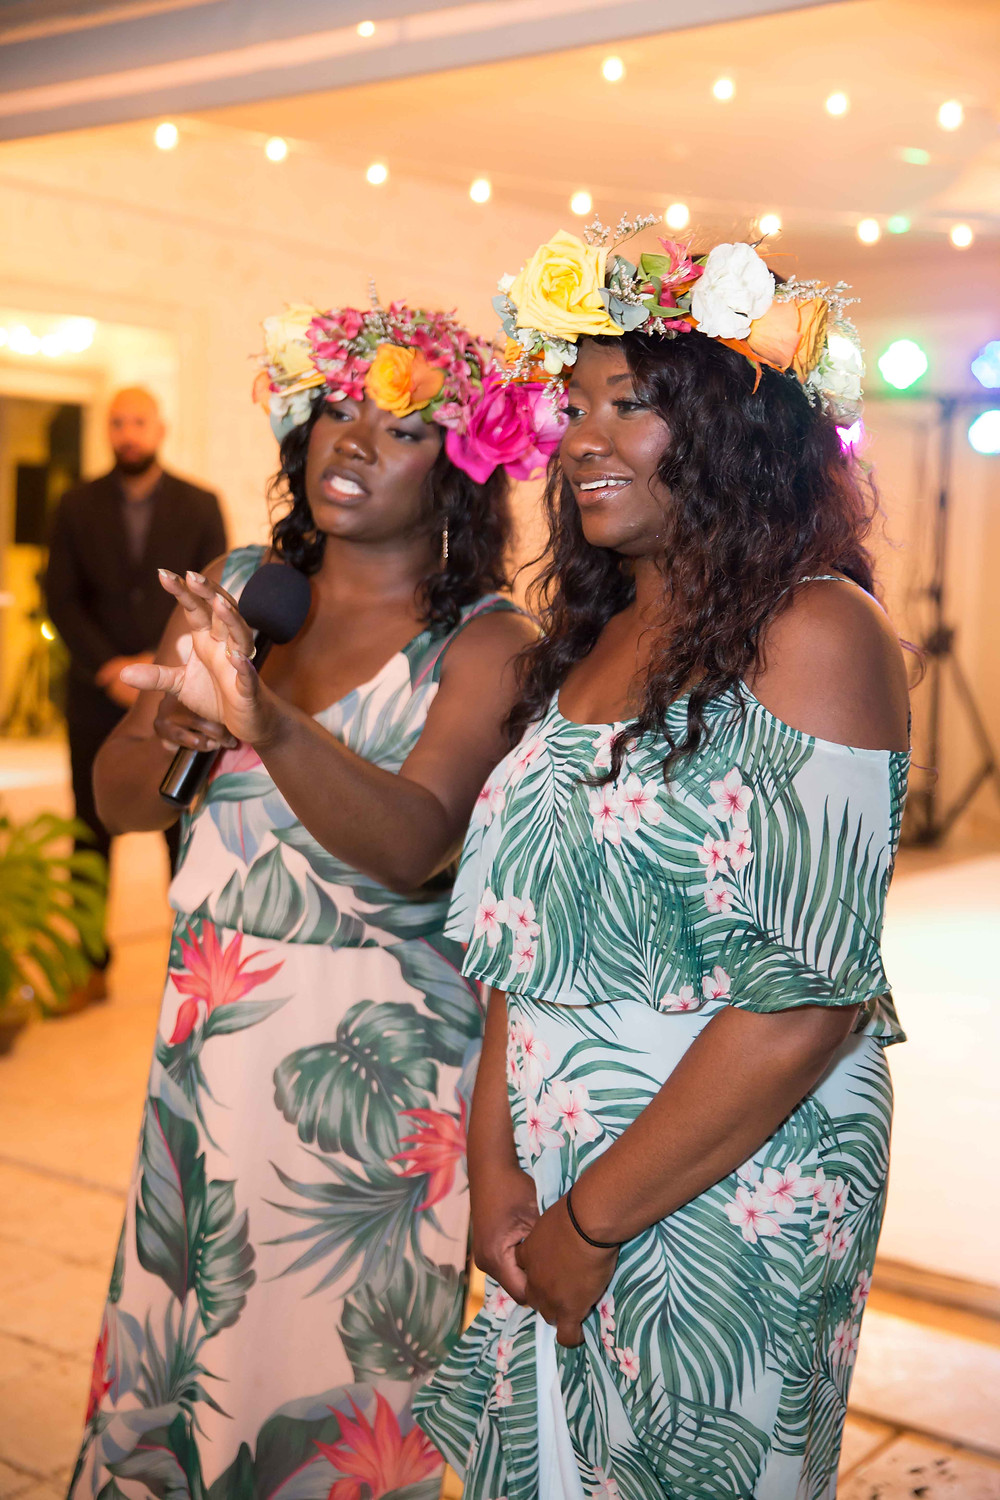 The bride's sisters speak at the destination wedding reception in Punta Cana, Dominican Repulic.